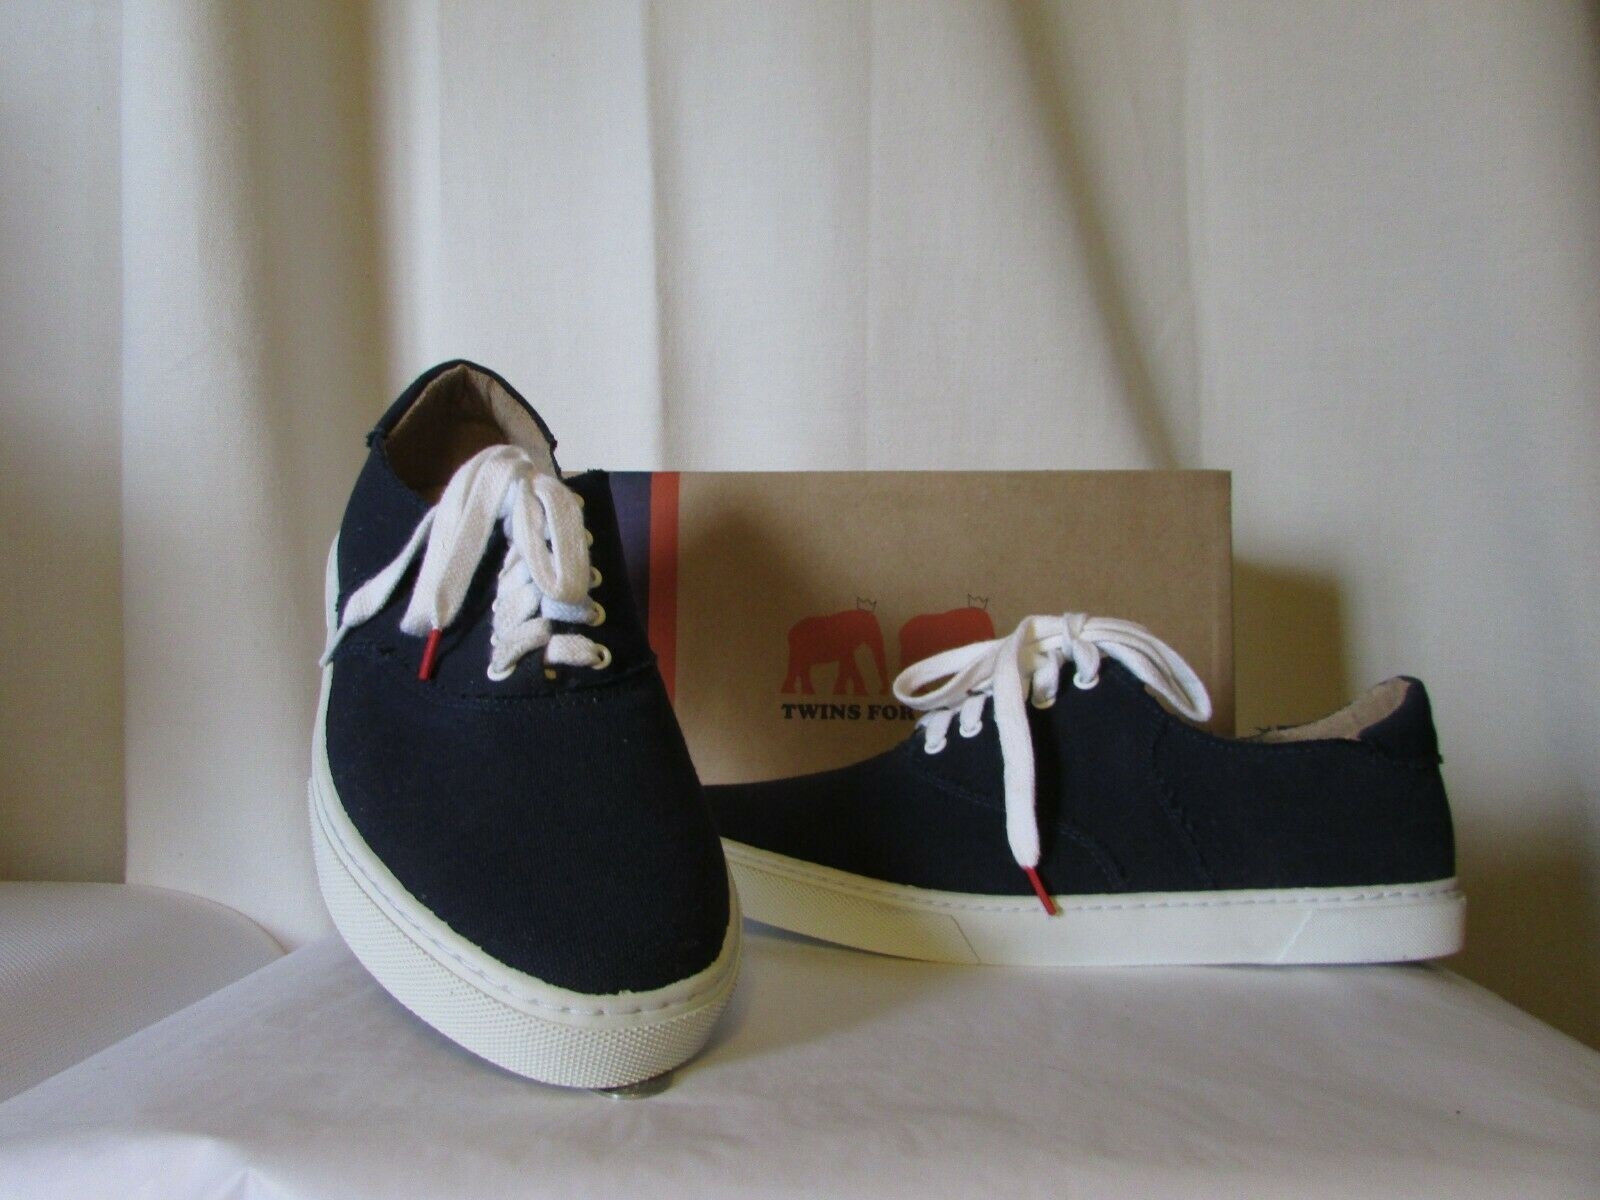 Sports shoes Twins For Peace bluee Canvas Size 42